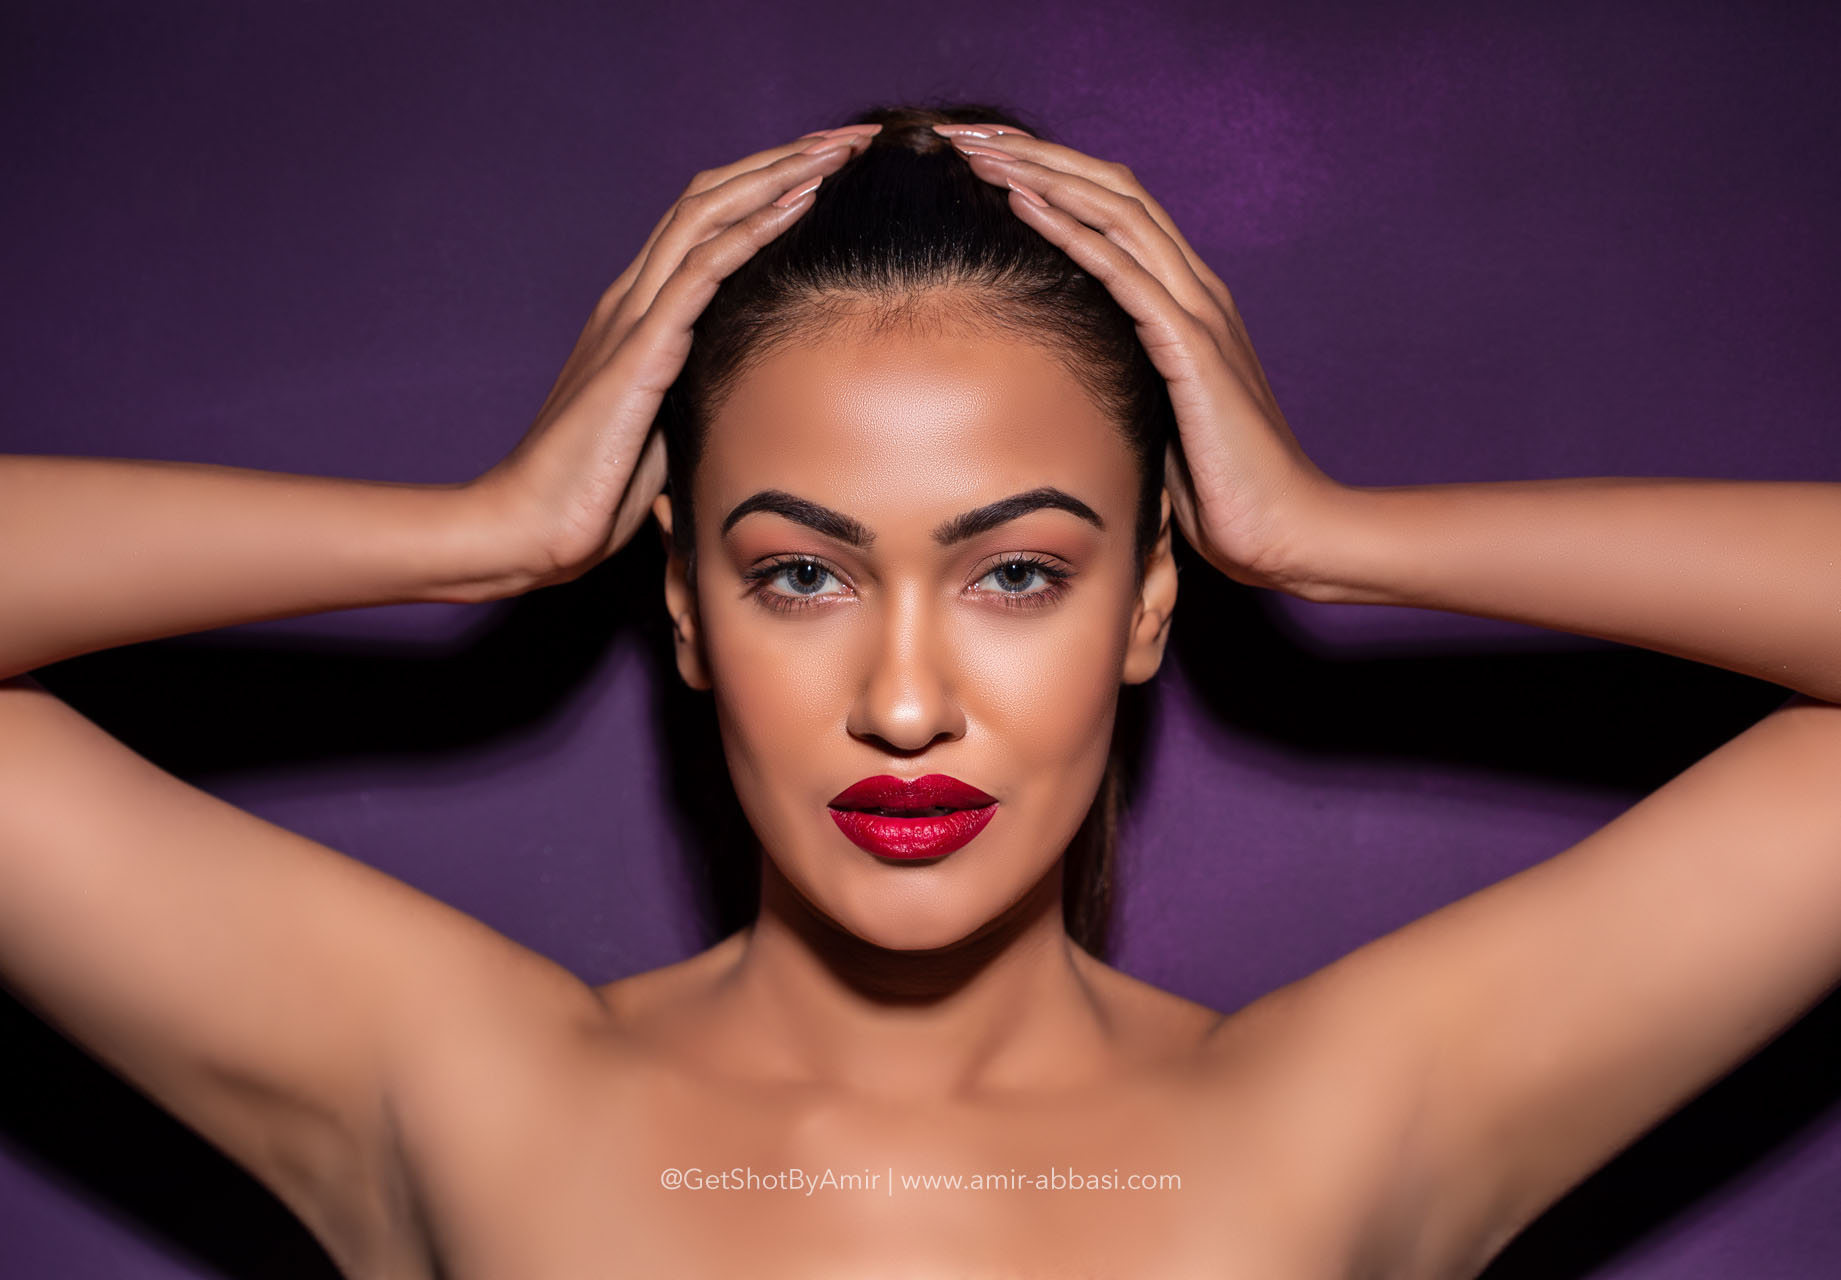 Awesome beauty shots by Amir Abbasi